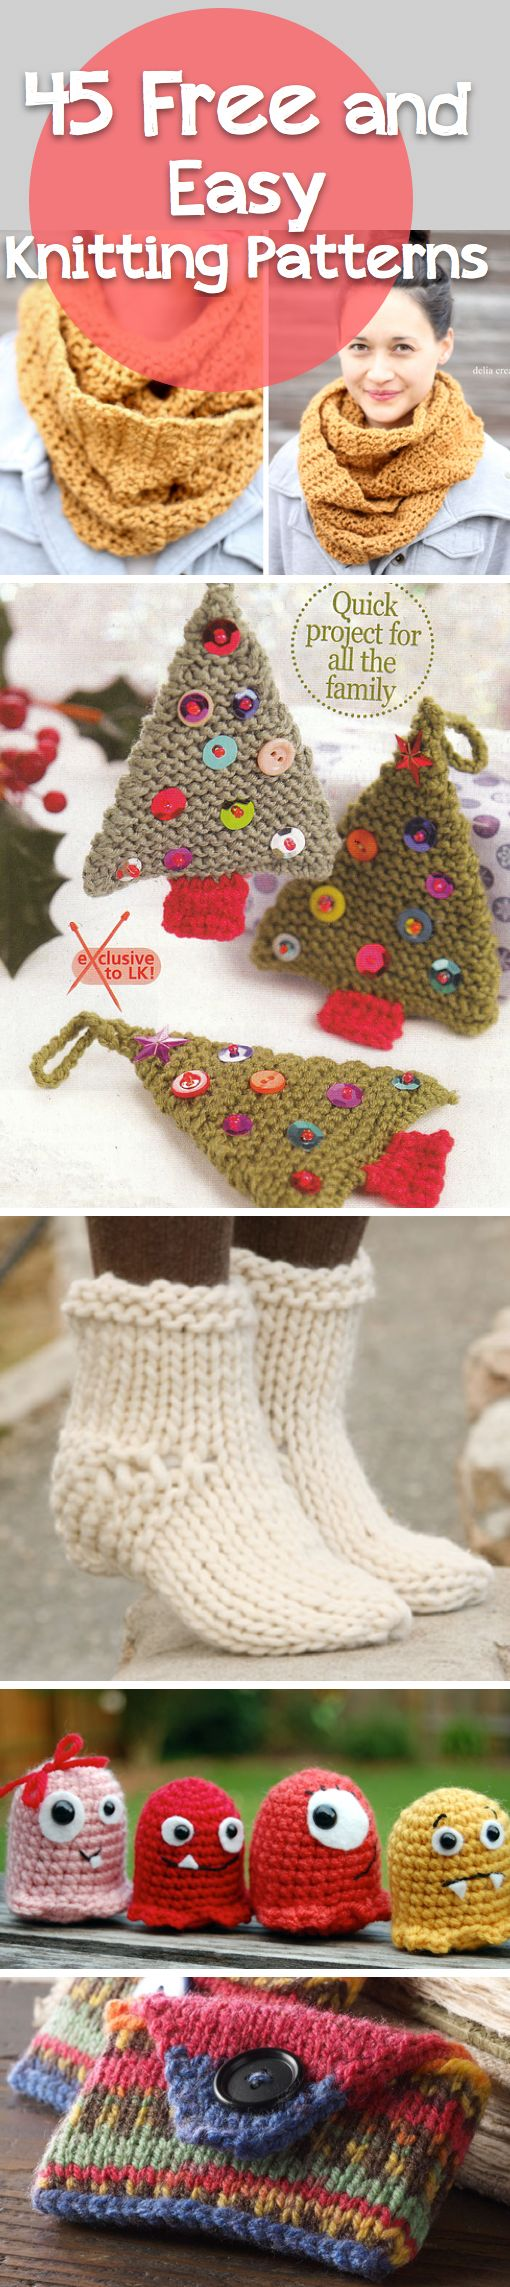 Christmas Knitting Patterns Easy : 17 Best ideas about Christmas Knitting on Pinterest Knit christmas ornament...